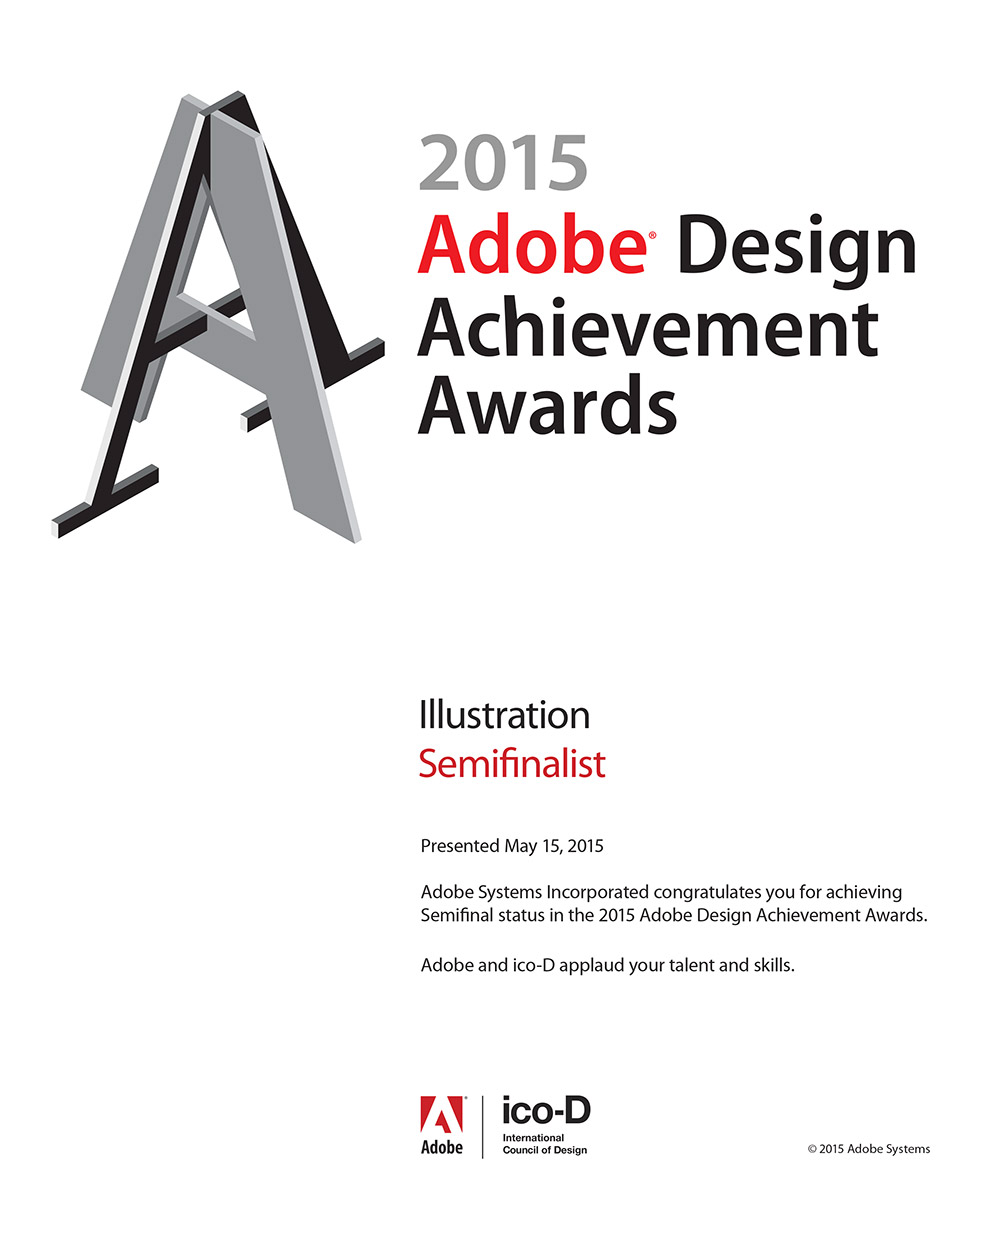 2015 Adobe Design Achievement Awards Semifinalist